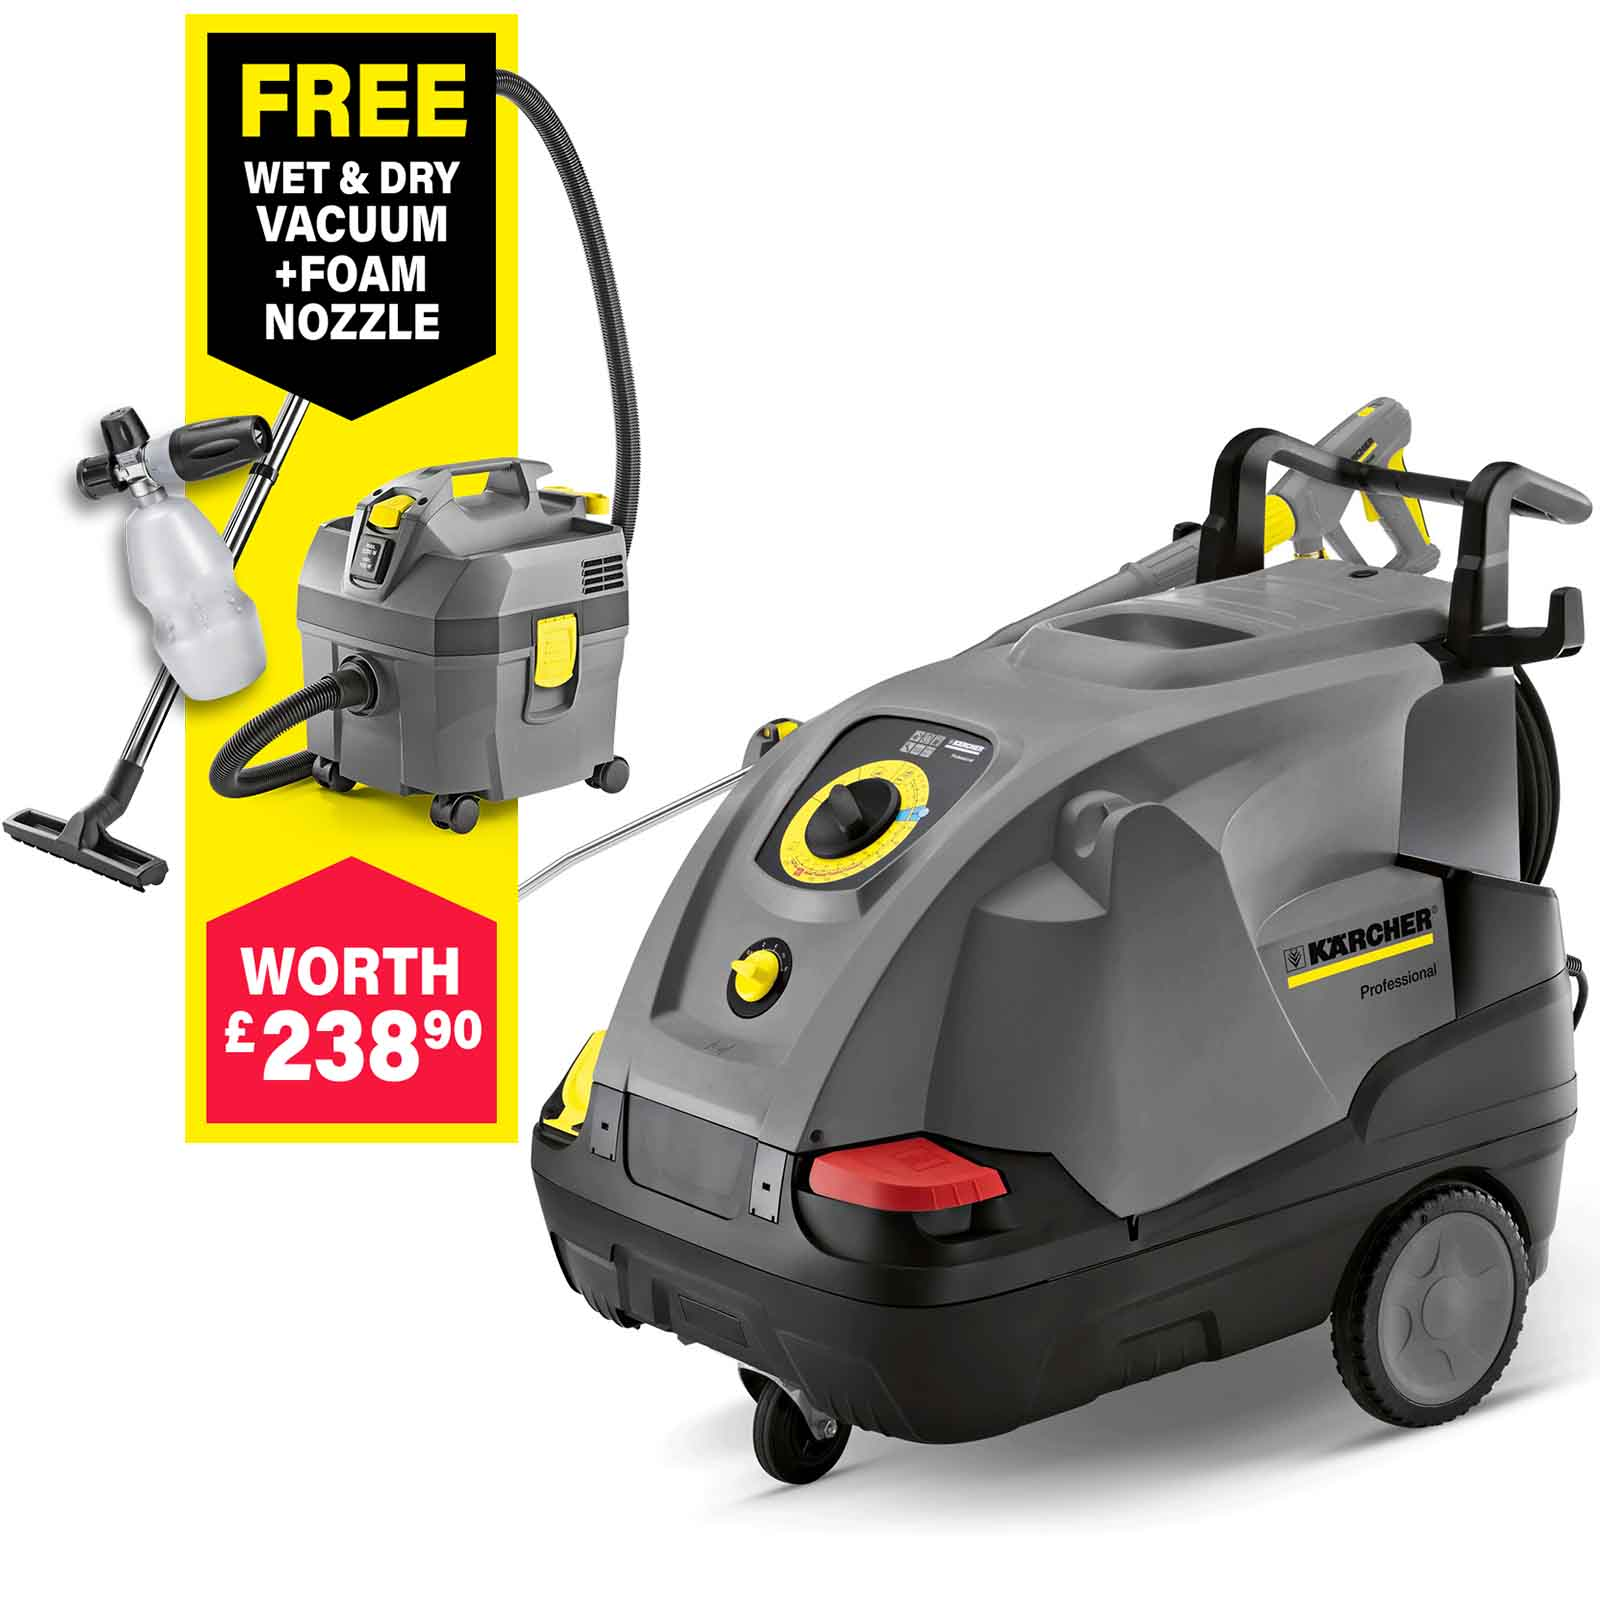 karcher hds 6 12 c professional hot water steam pressure washer 120 bar free foam nozzle worth 82 95 [ 1600 x 1600 Pixel ]